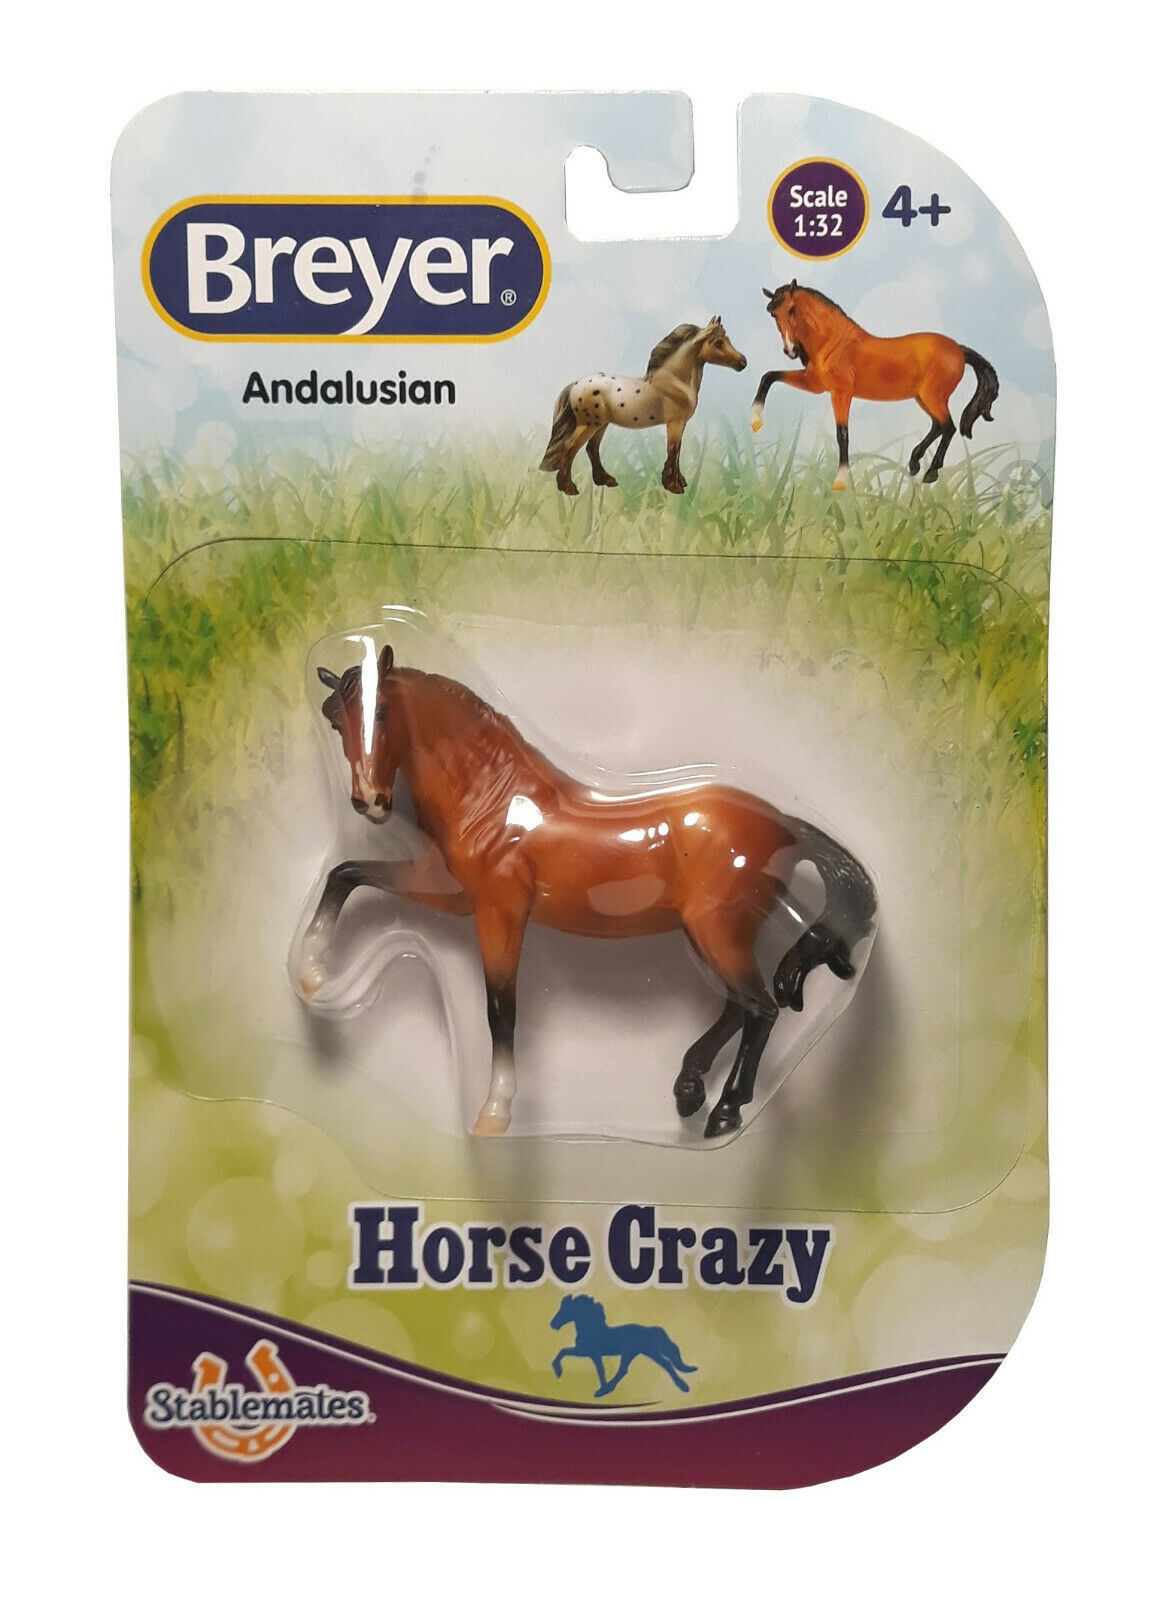 Breyer Stablemates Horse Crazy: Andalusian Figurine New in Package - $9.88